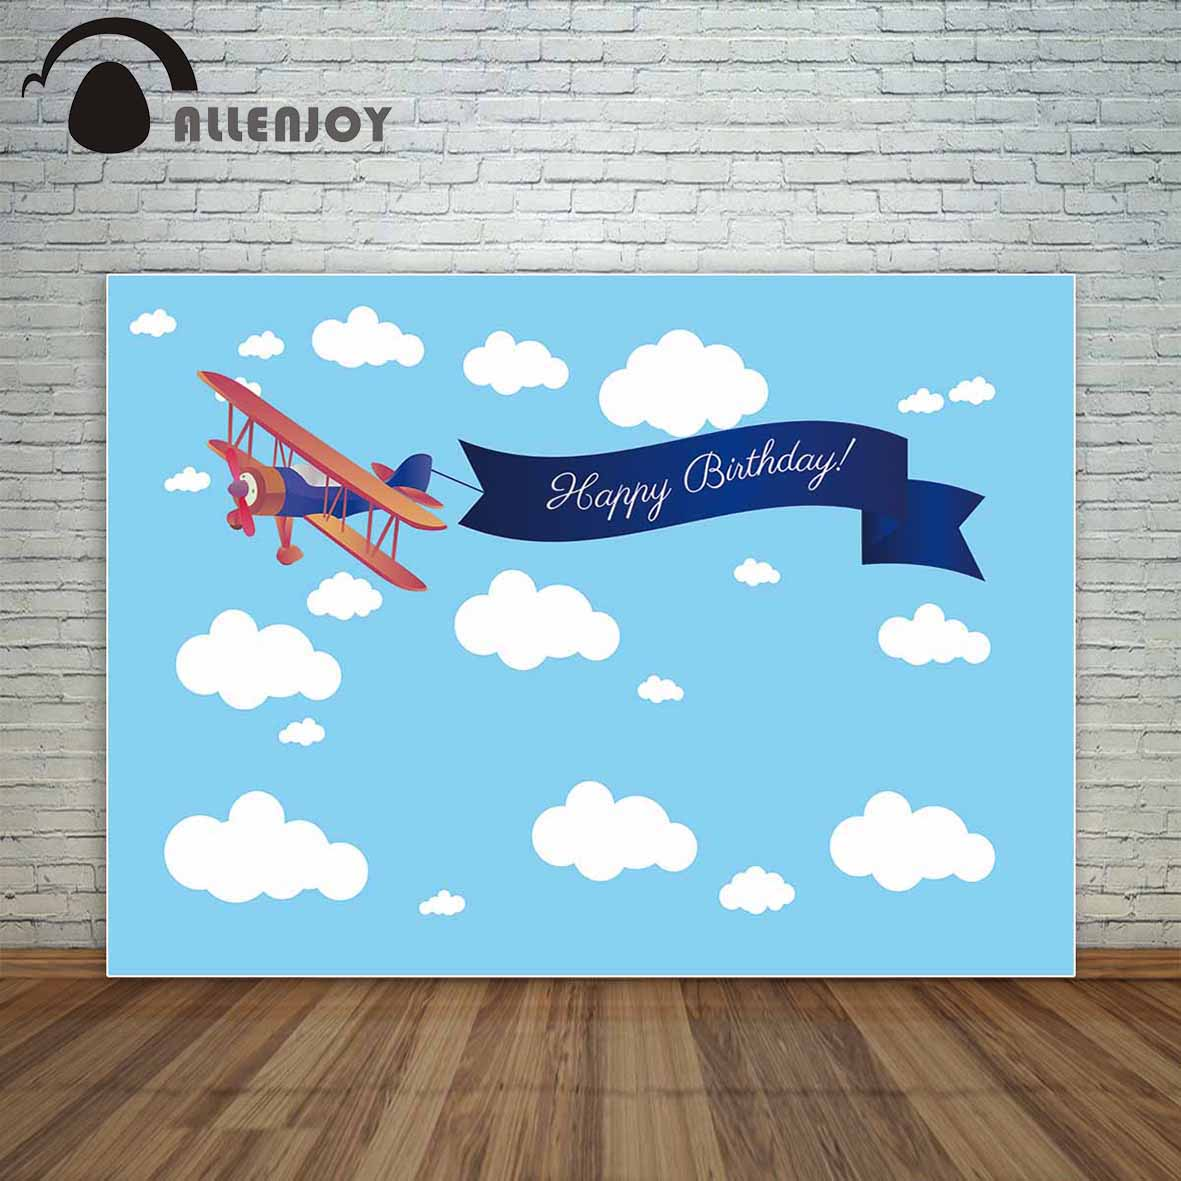 Allenjoy Photography Backdrops Blue Sky Cloud Cartoon Airplane Boys Birthday Ribbon Children Background Fotografia Photocall